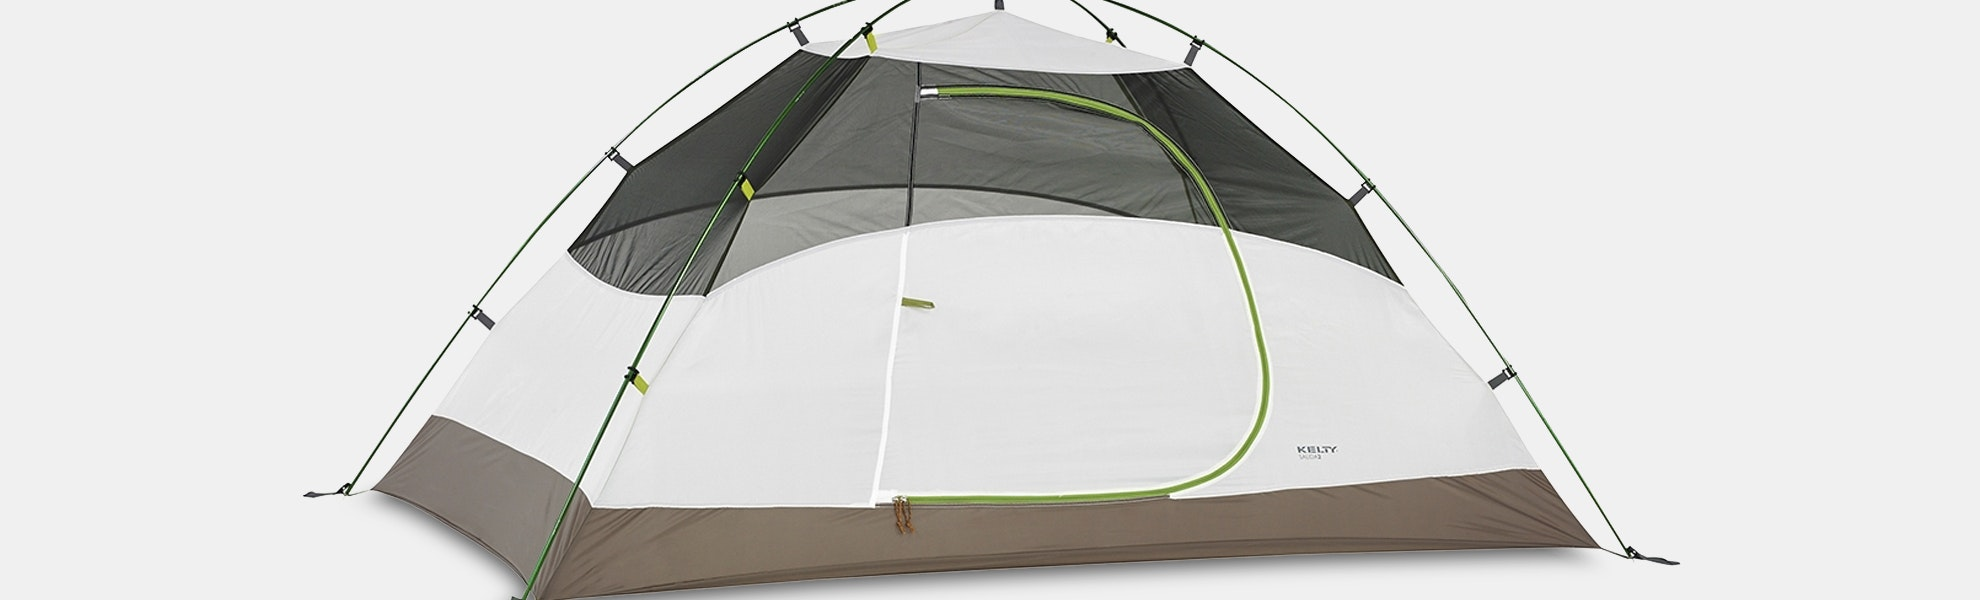 Kelty Salida Tents & Kelty Salida Tents | Price u0026 Reviews | Massdrop